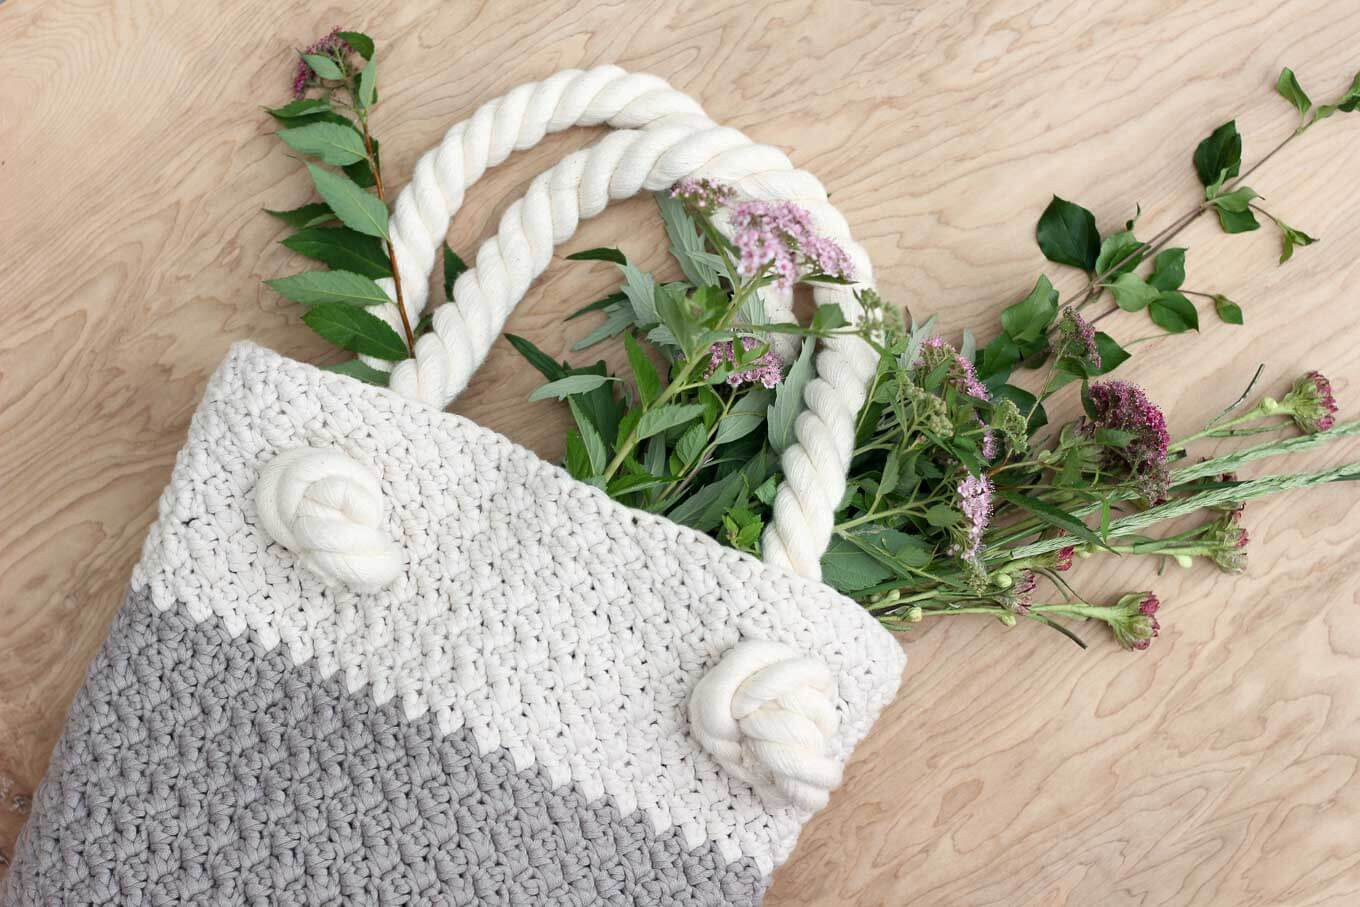 Crochet Bag Pattern for Beginners Elegant House or Dorm Warming Free Crochet Pillow Pattern Make Of Awesome 45 Photos Crochet Bag Pattern for Beginners